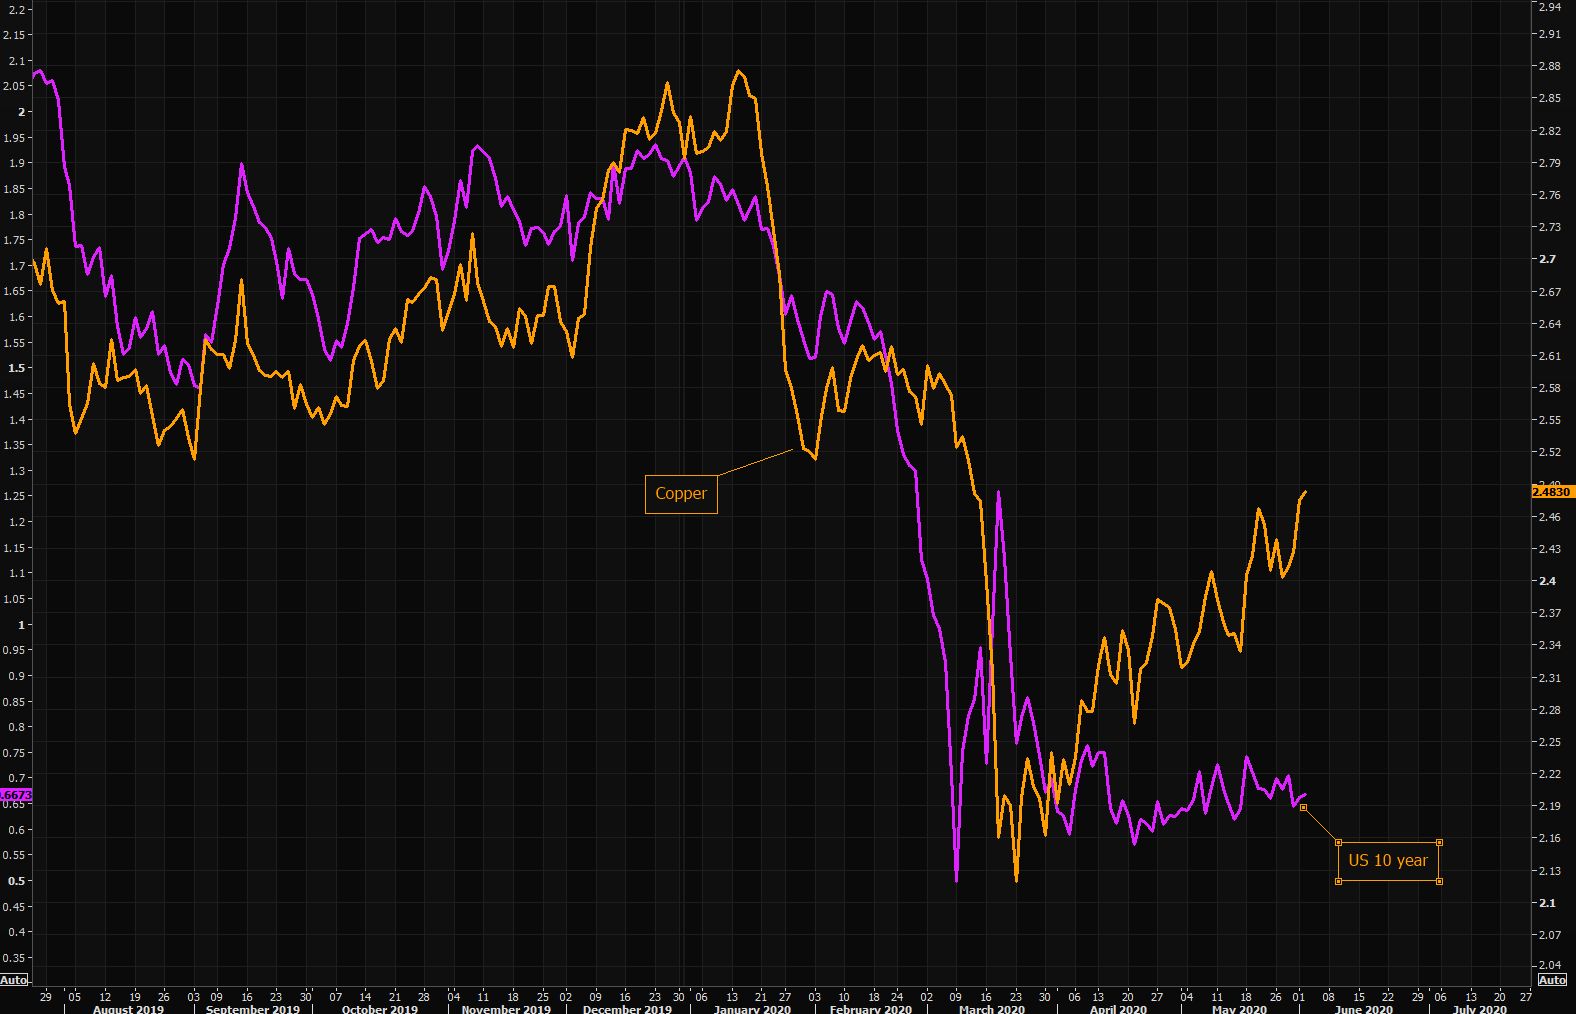 Economy vs economy - copper vs US 10 year JAWS getting wide